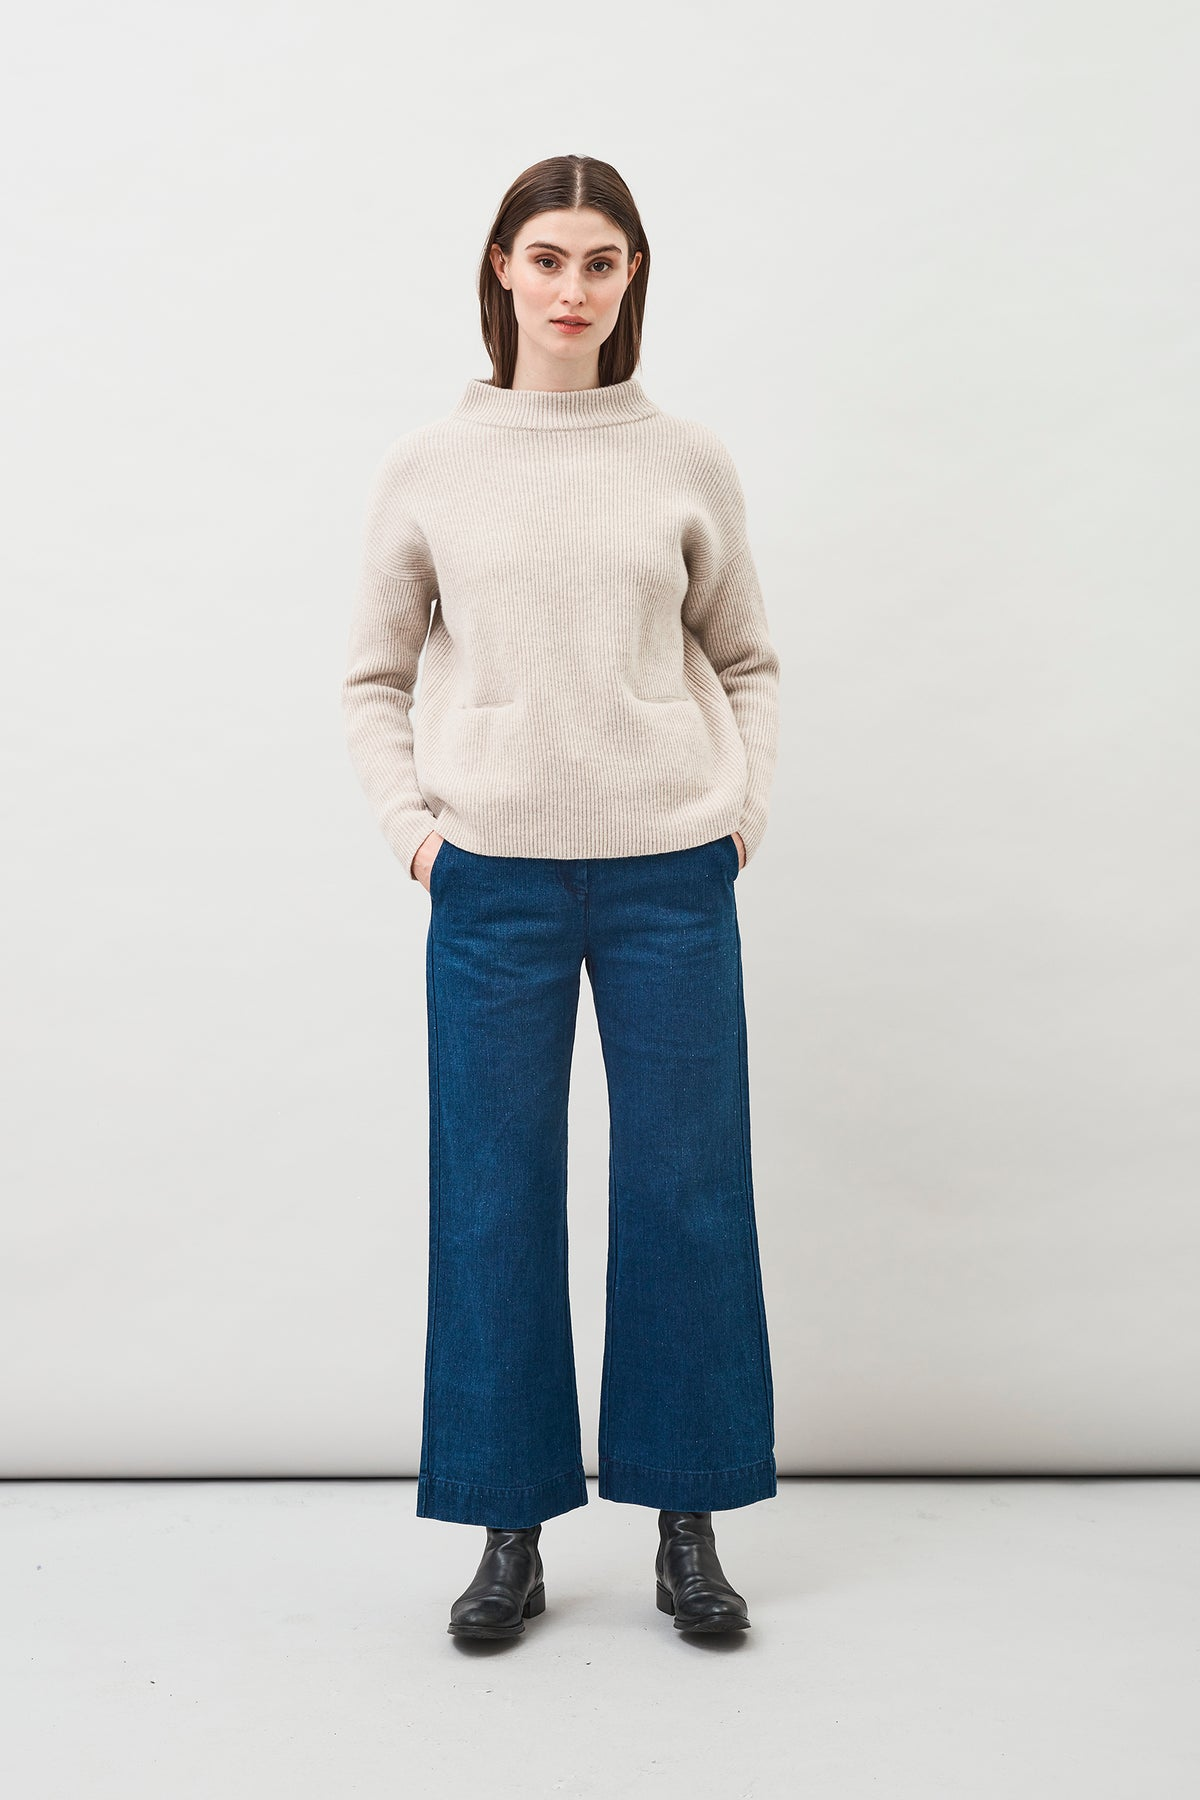 Helga Wool Sweater in Oat in a rib-knit construction with a chimney collar and integrated pockets